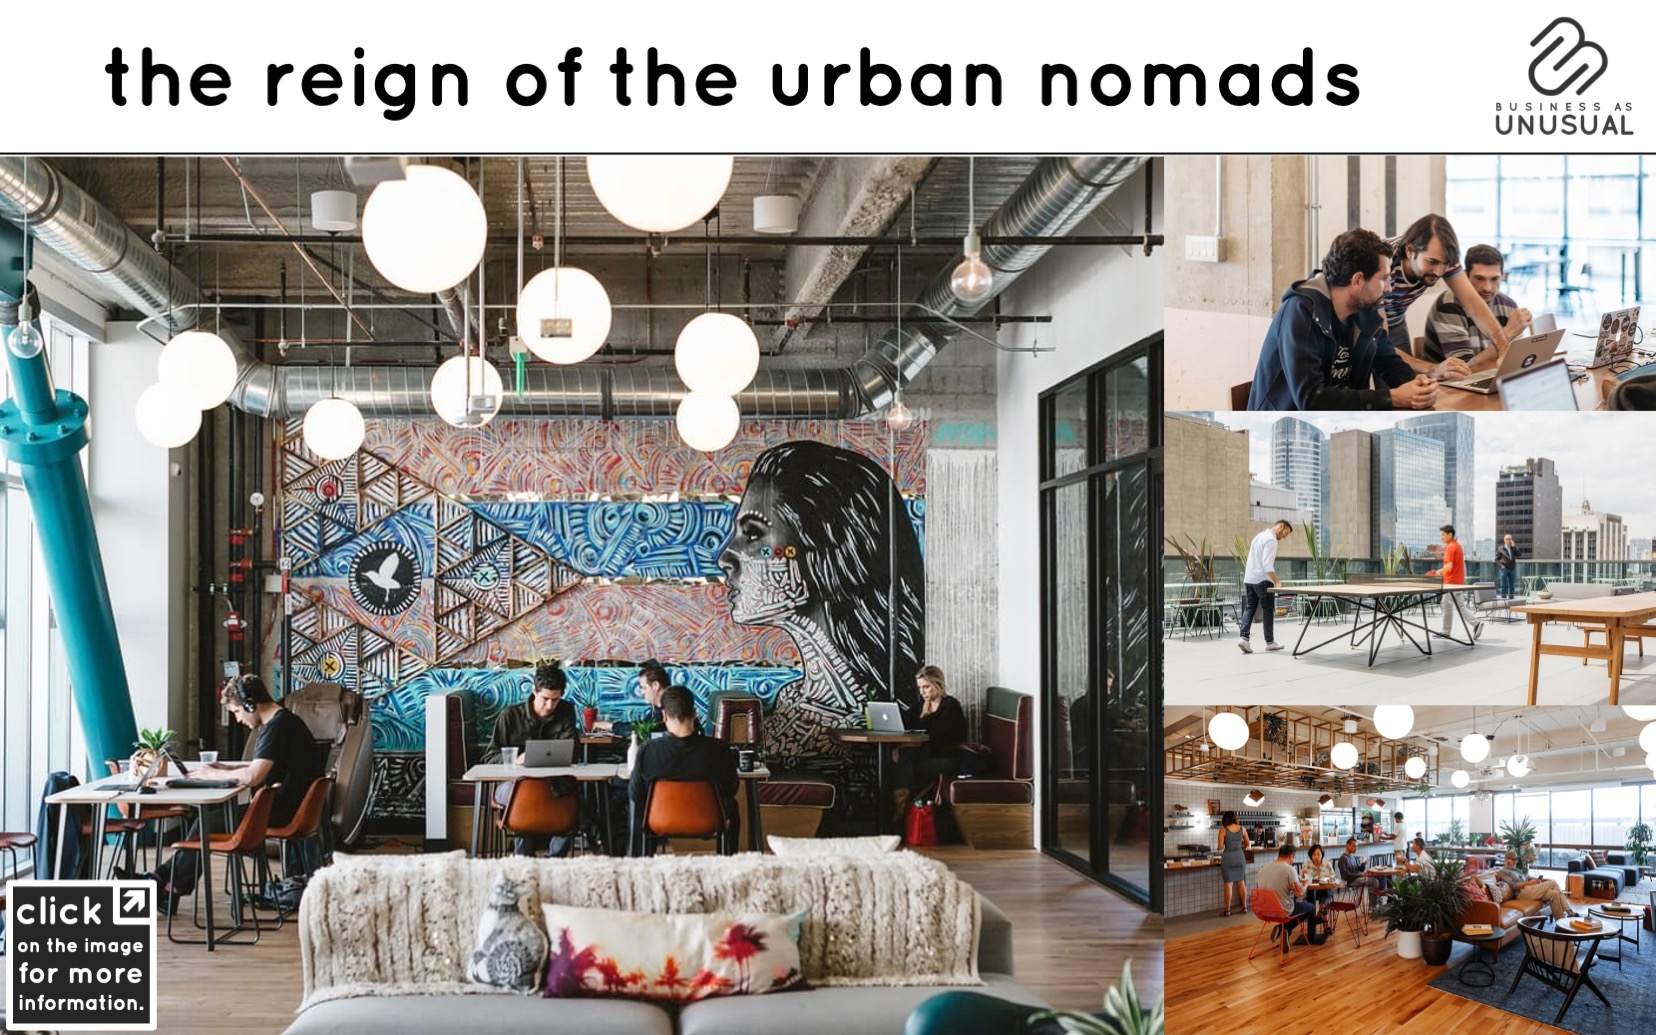 The Reign of the Urban Nomads - Wework